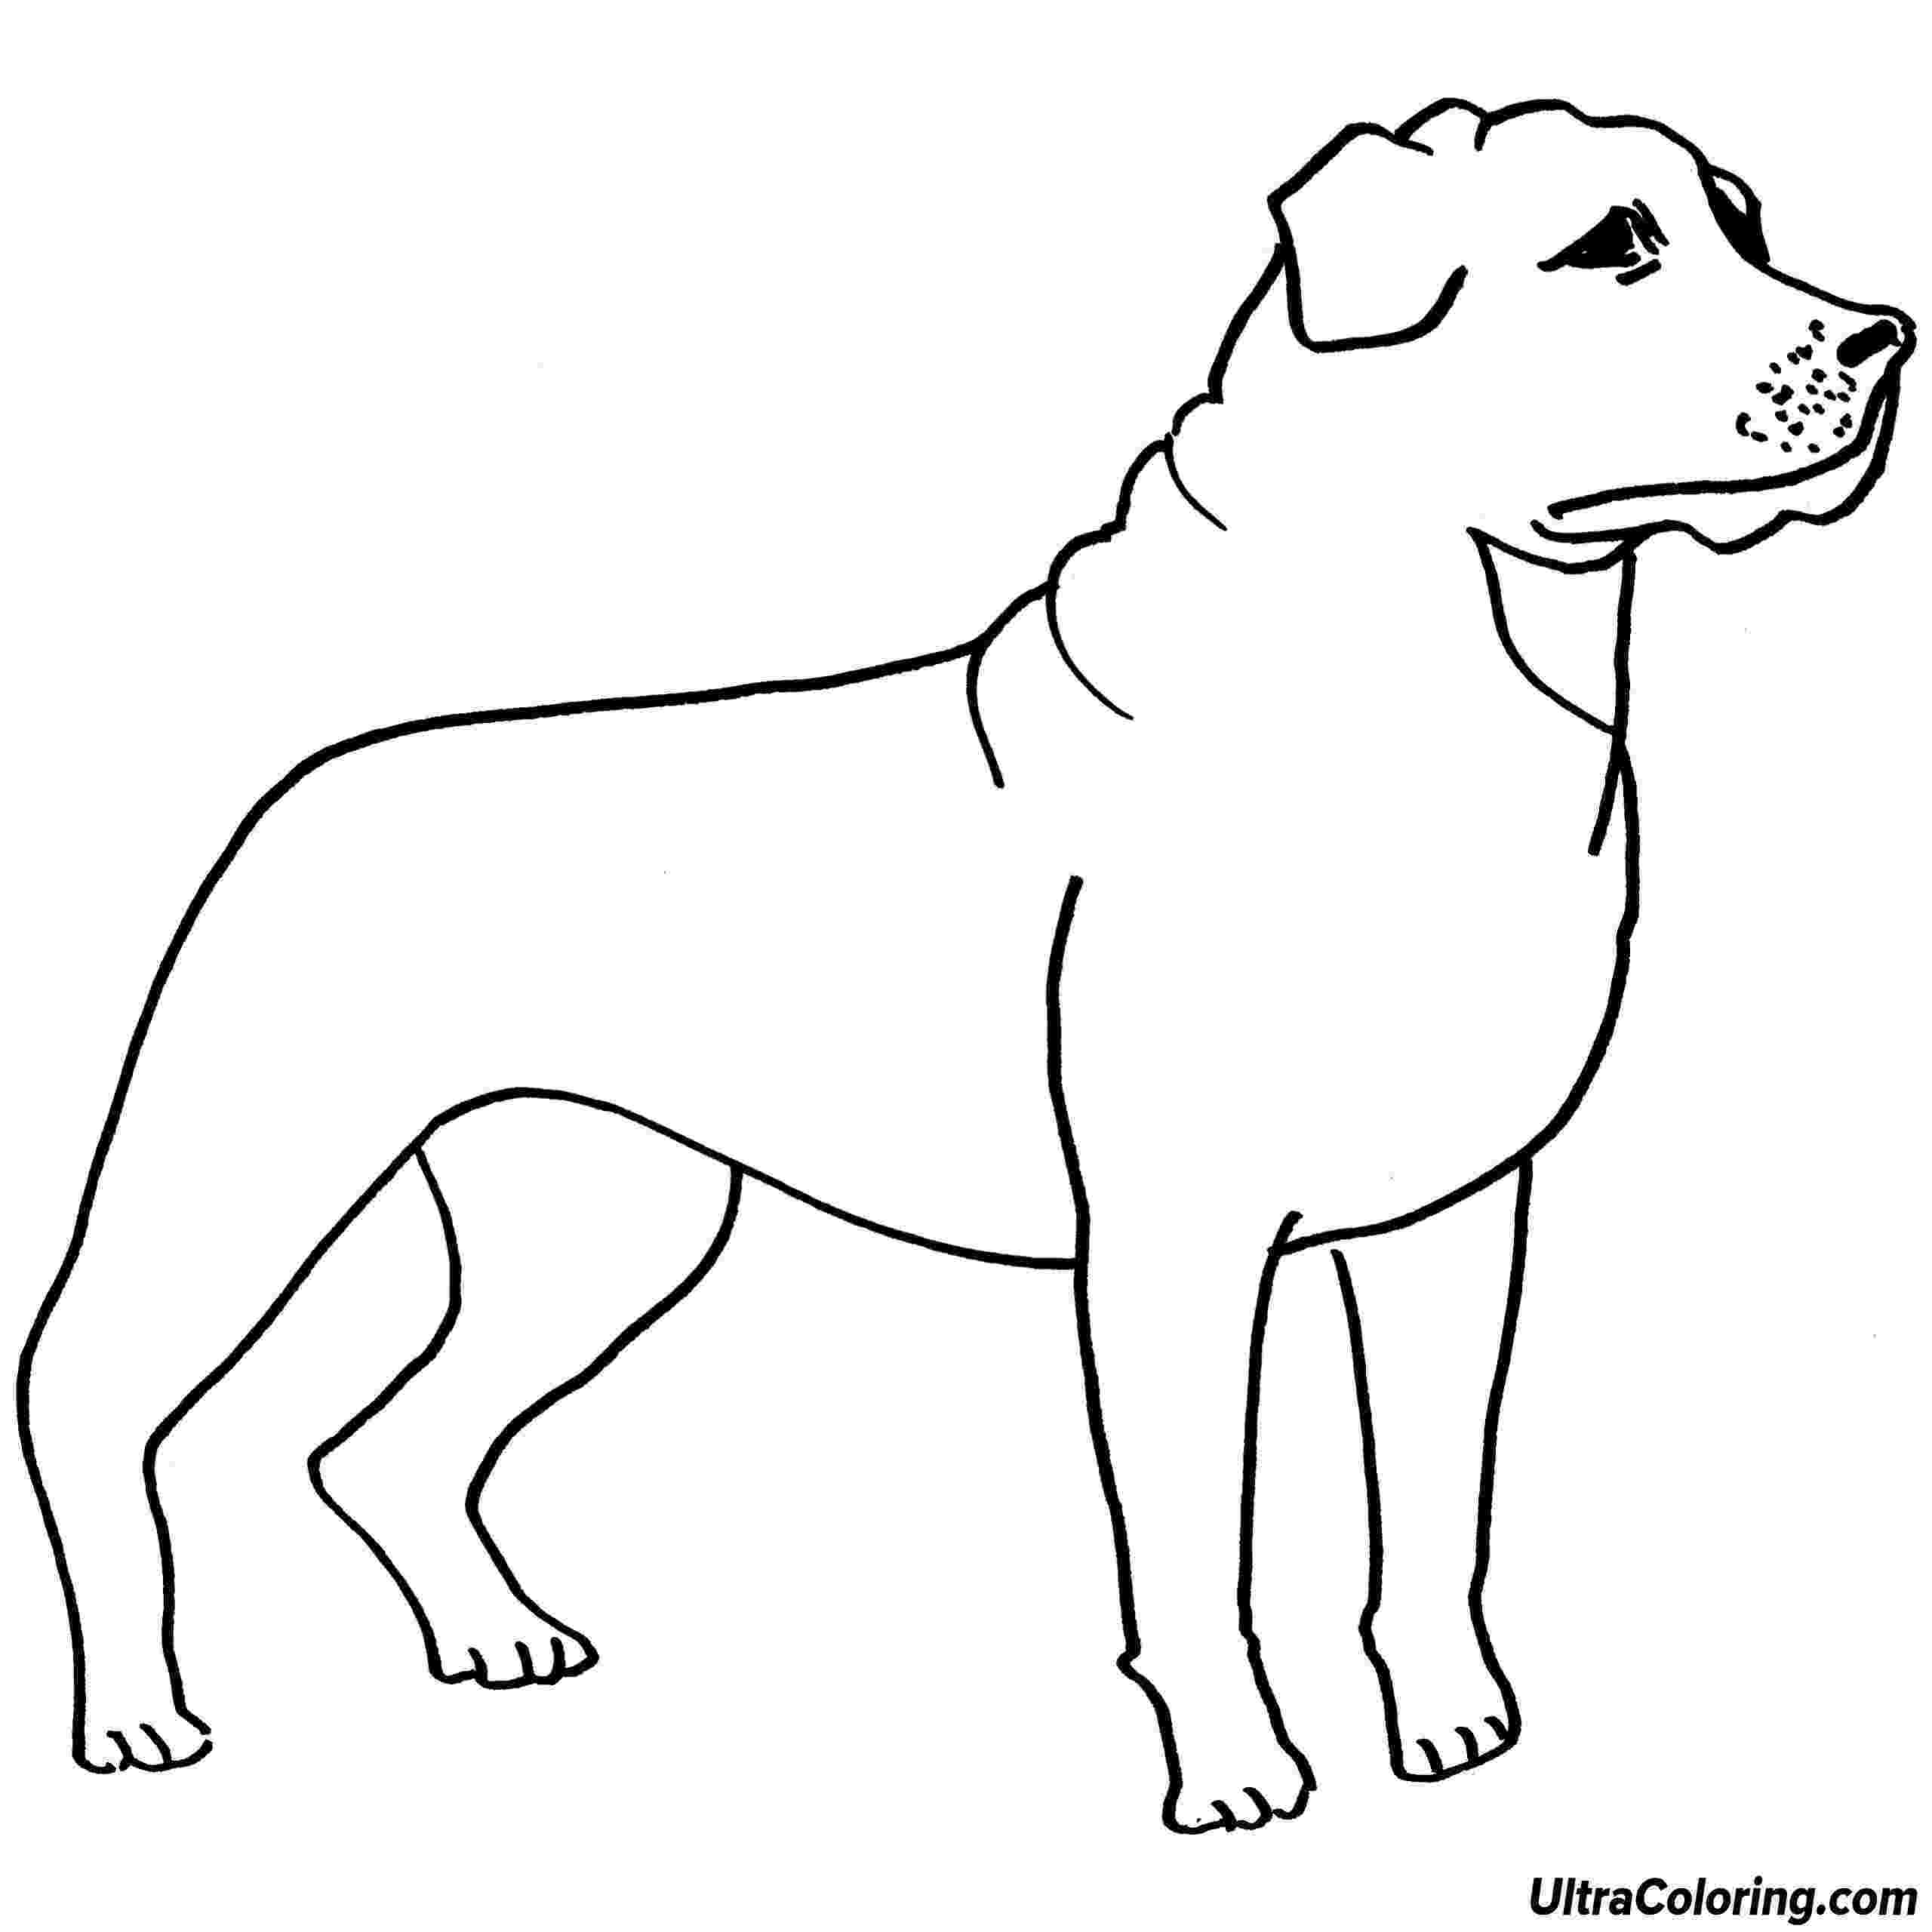 rottweiler coloring book funny rottweiler coloring page free printable coloring pages book rottweiler coloring